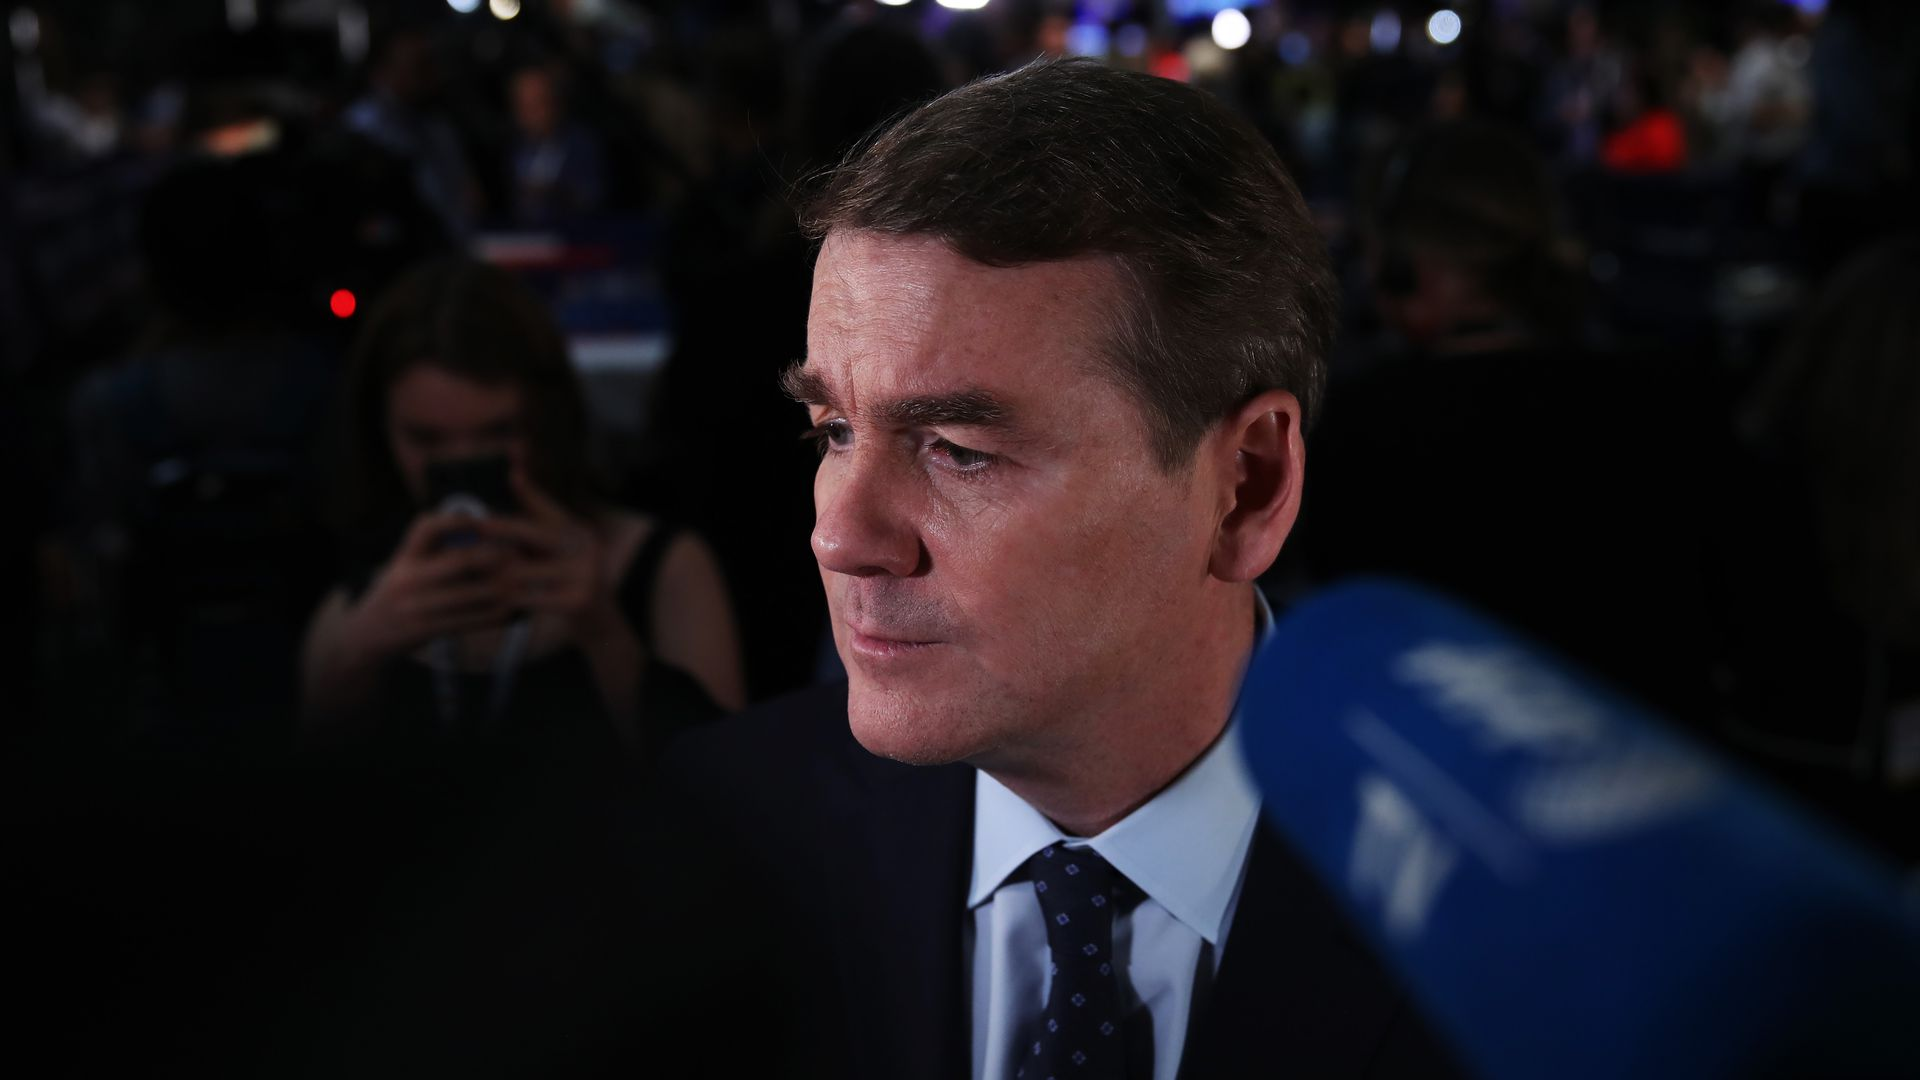 Sen. Michael Bennet (D-Col.) following the first round of 2020 Democratic primary debates.